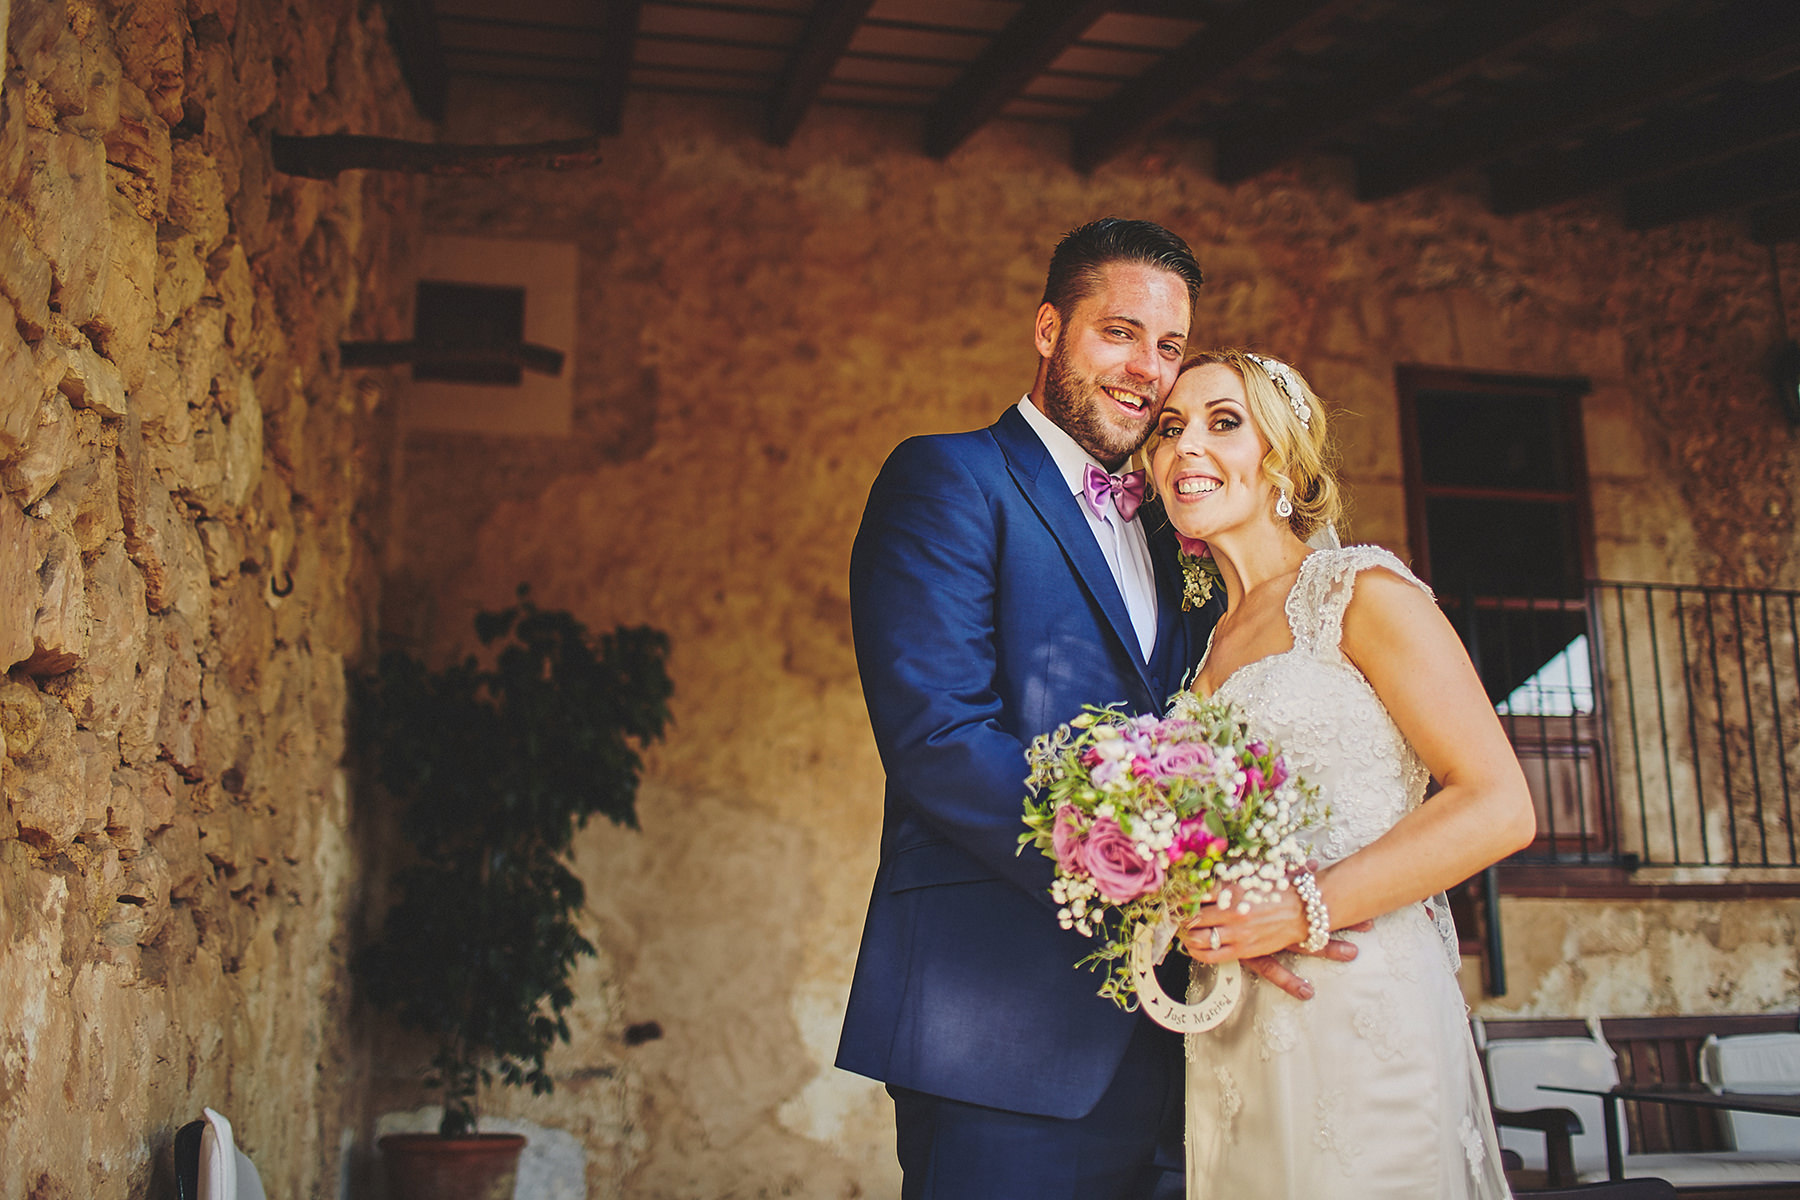 284 - Destination wedding in a magical Mallorca